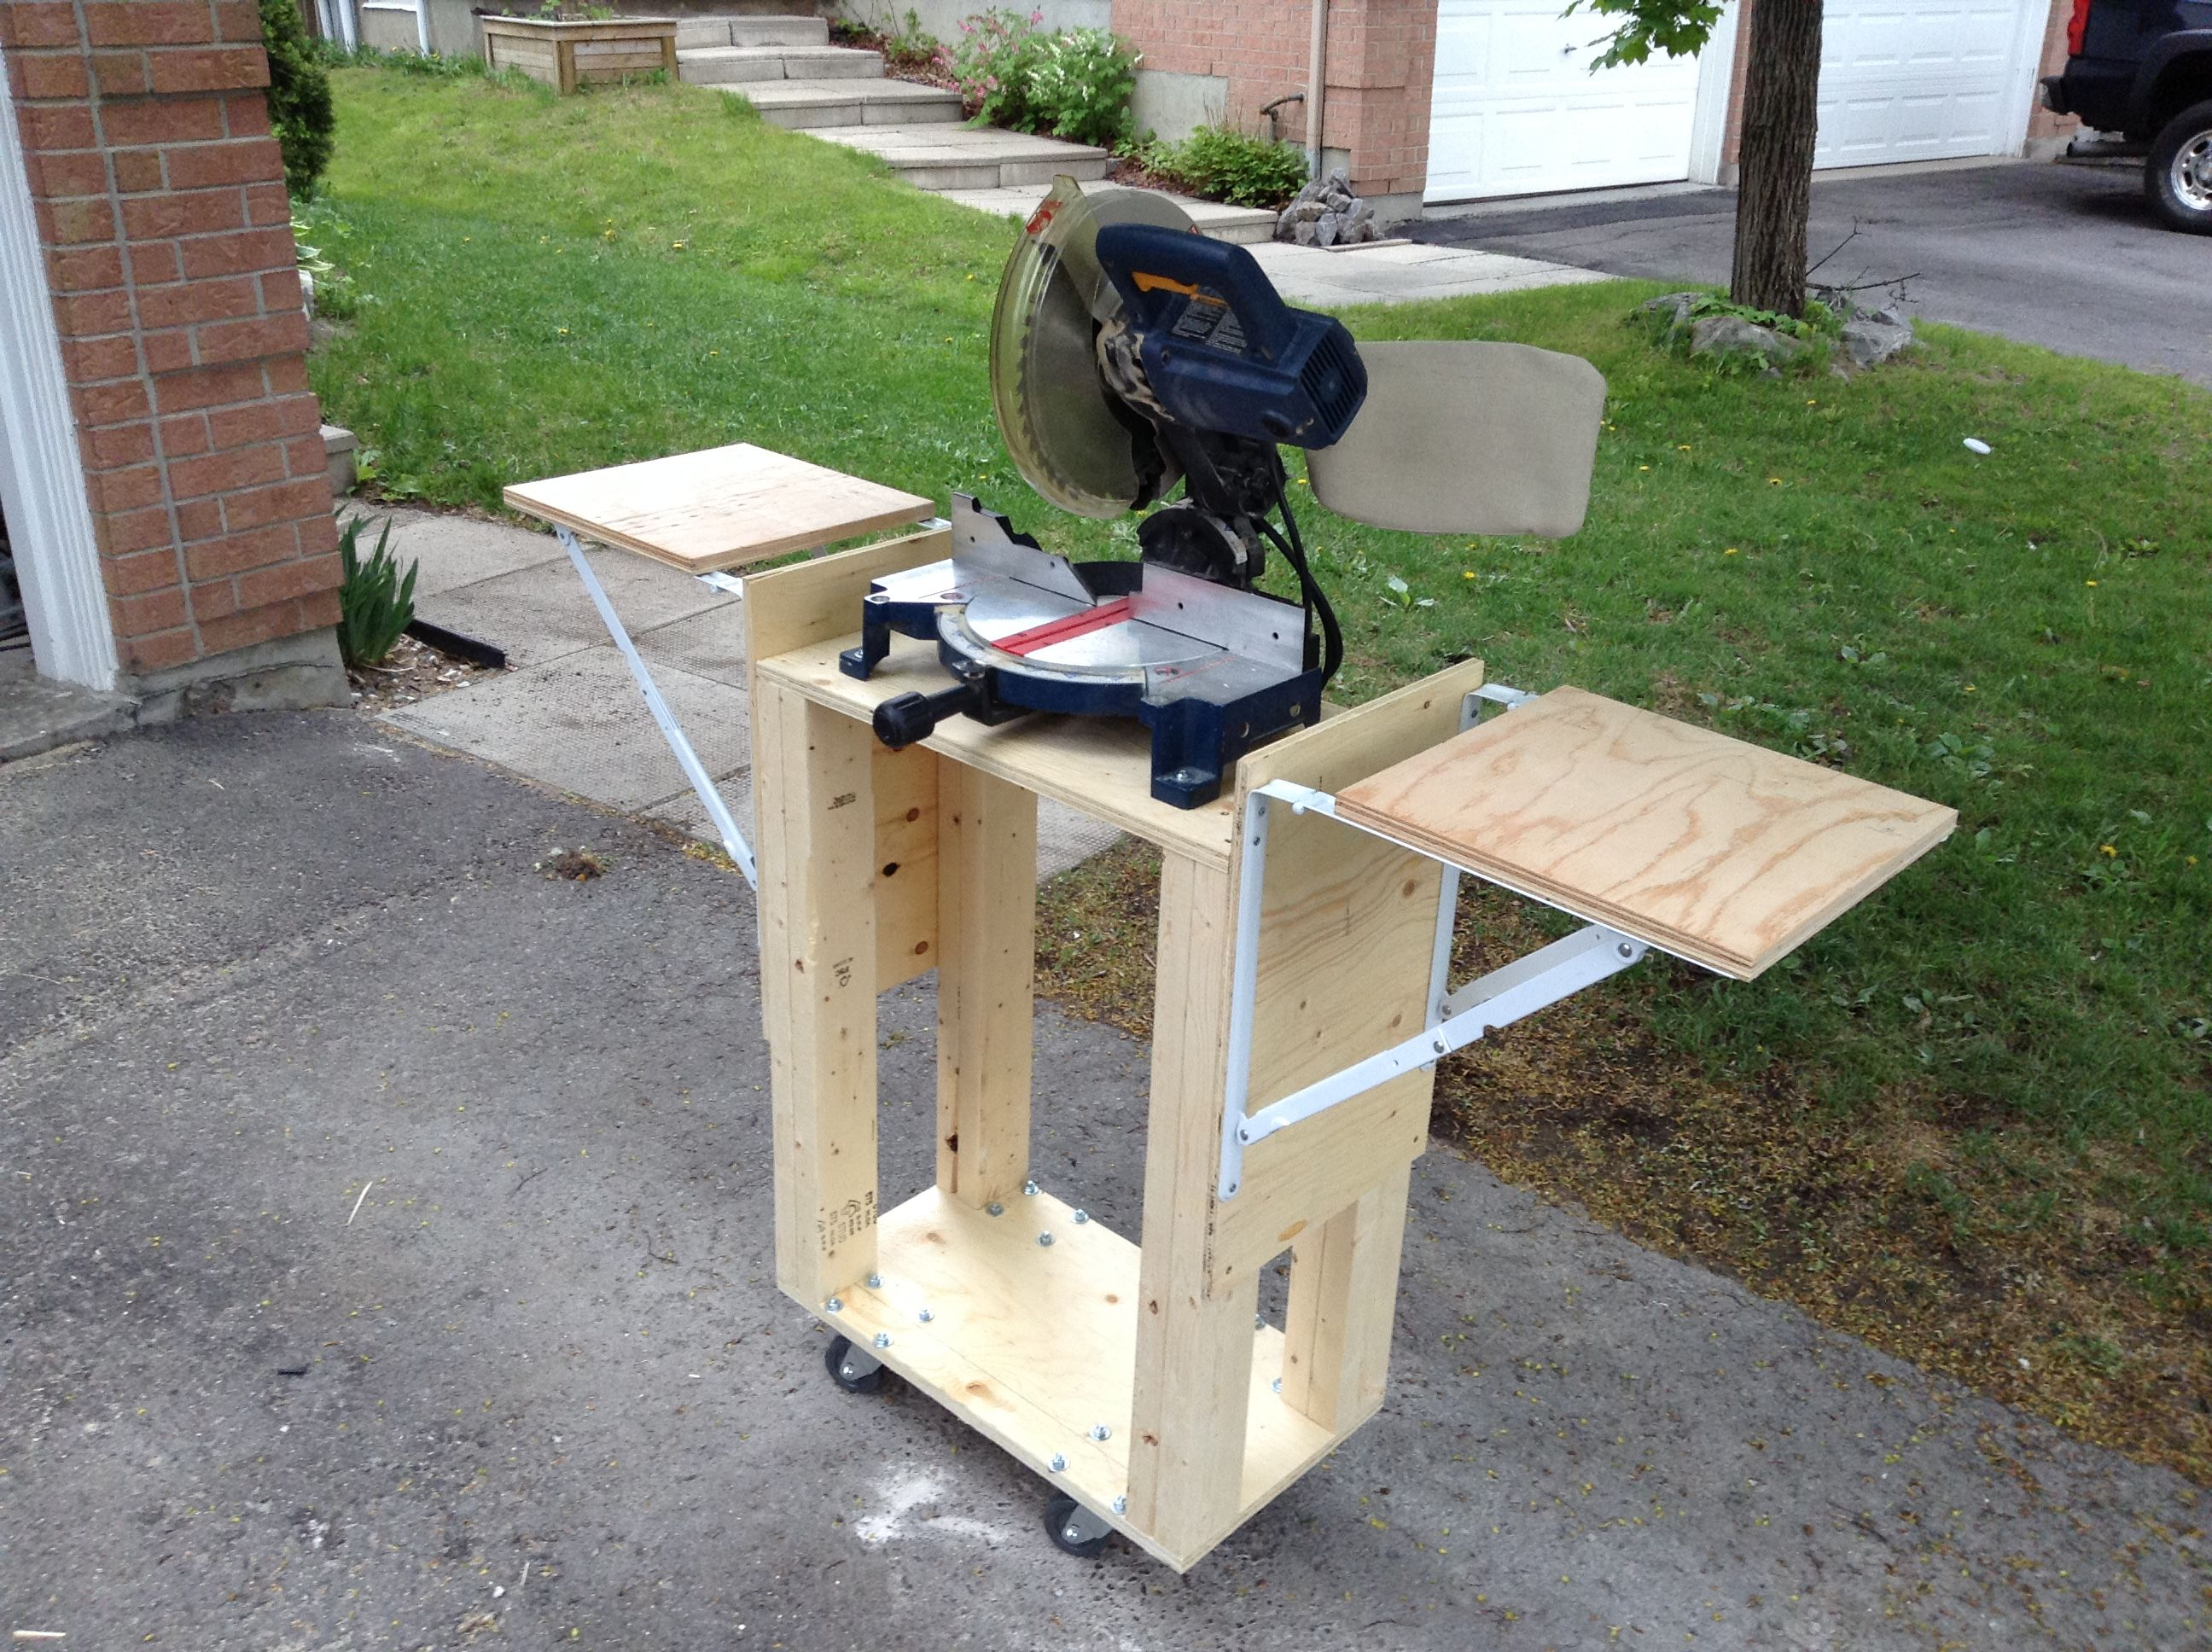 A mobile miter saw stand Woodworking tools for sale